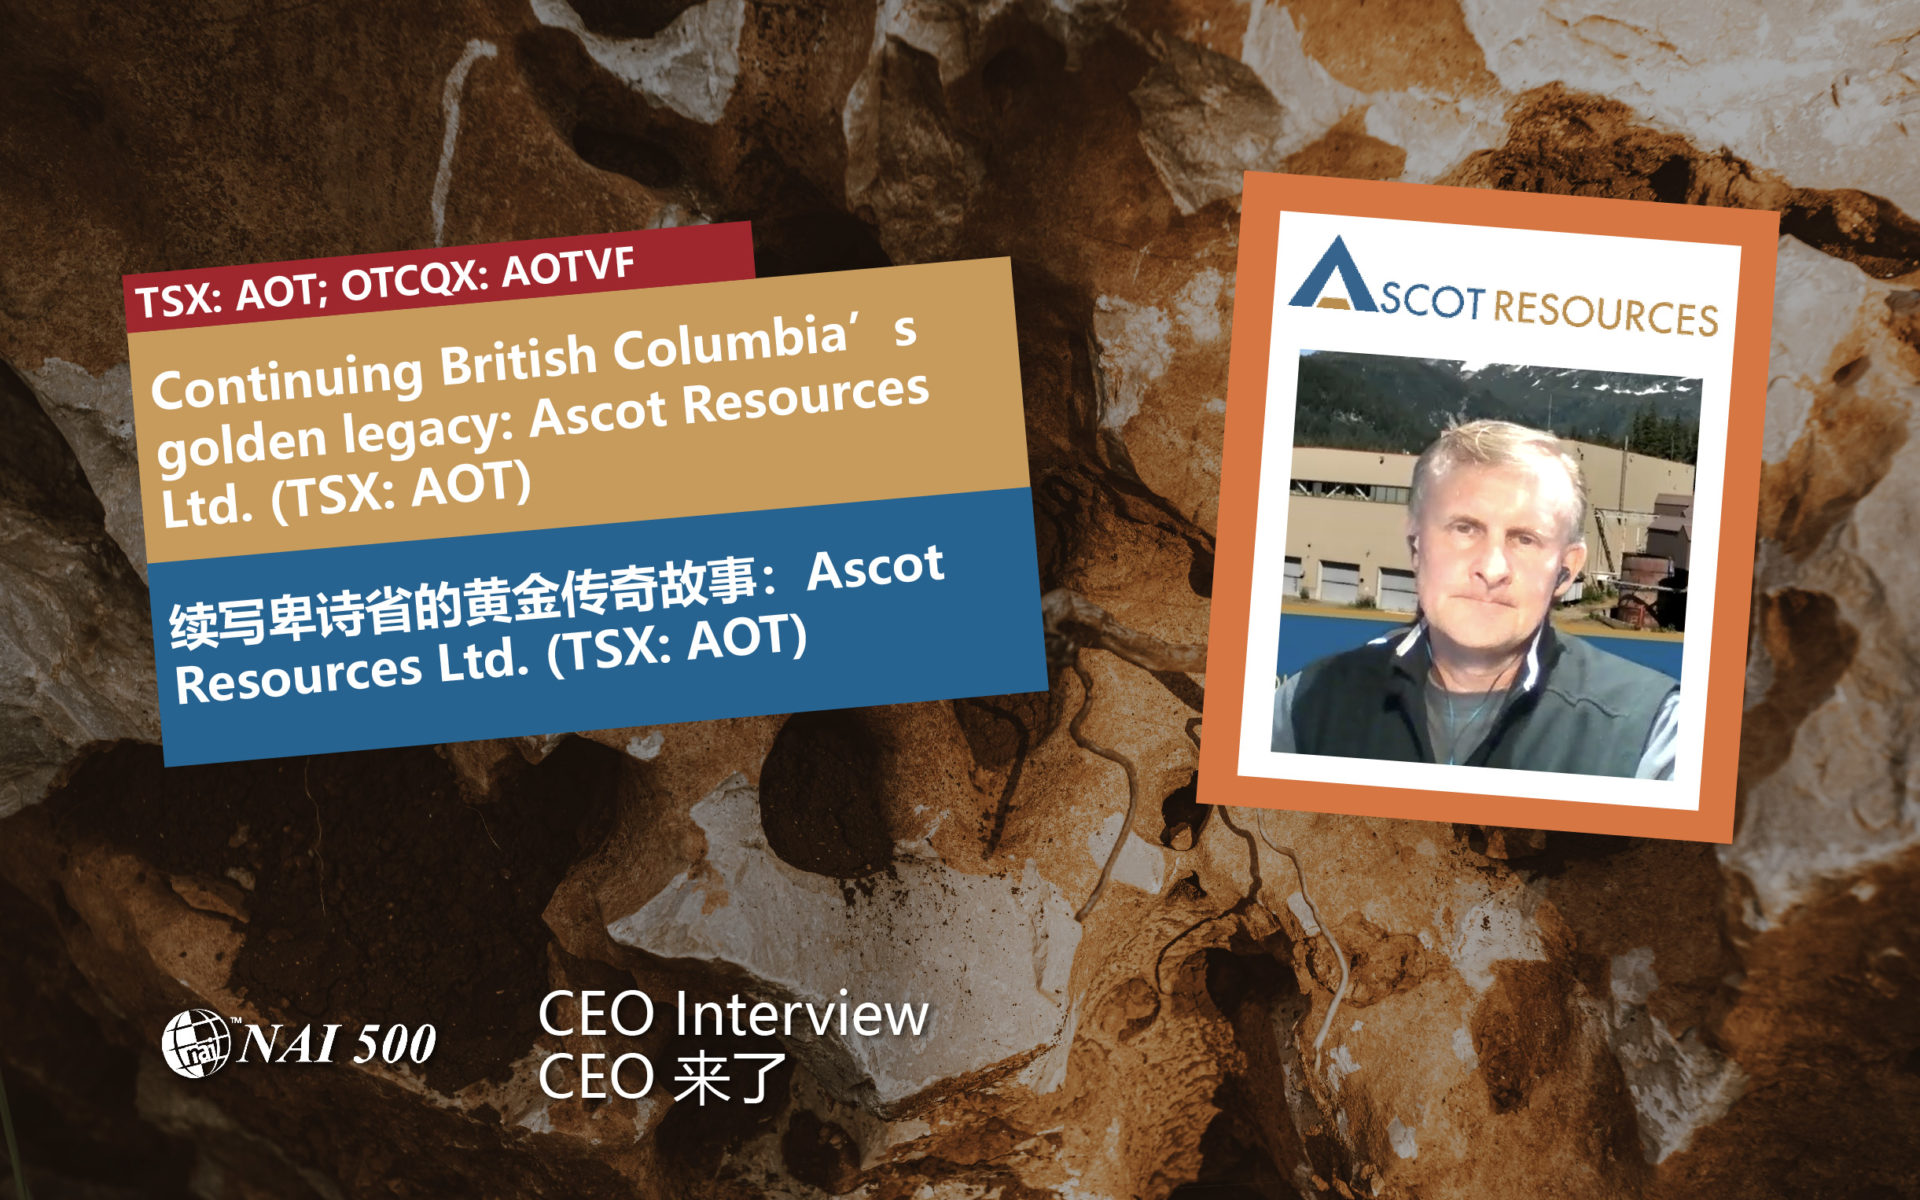 About Ascot Resources